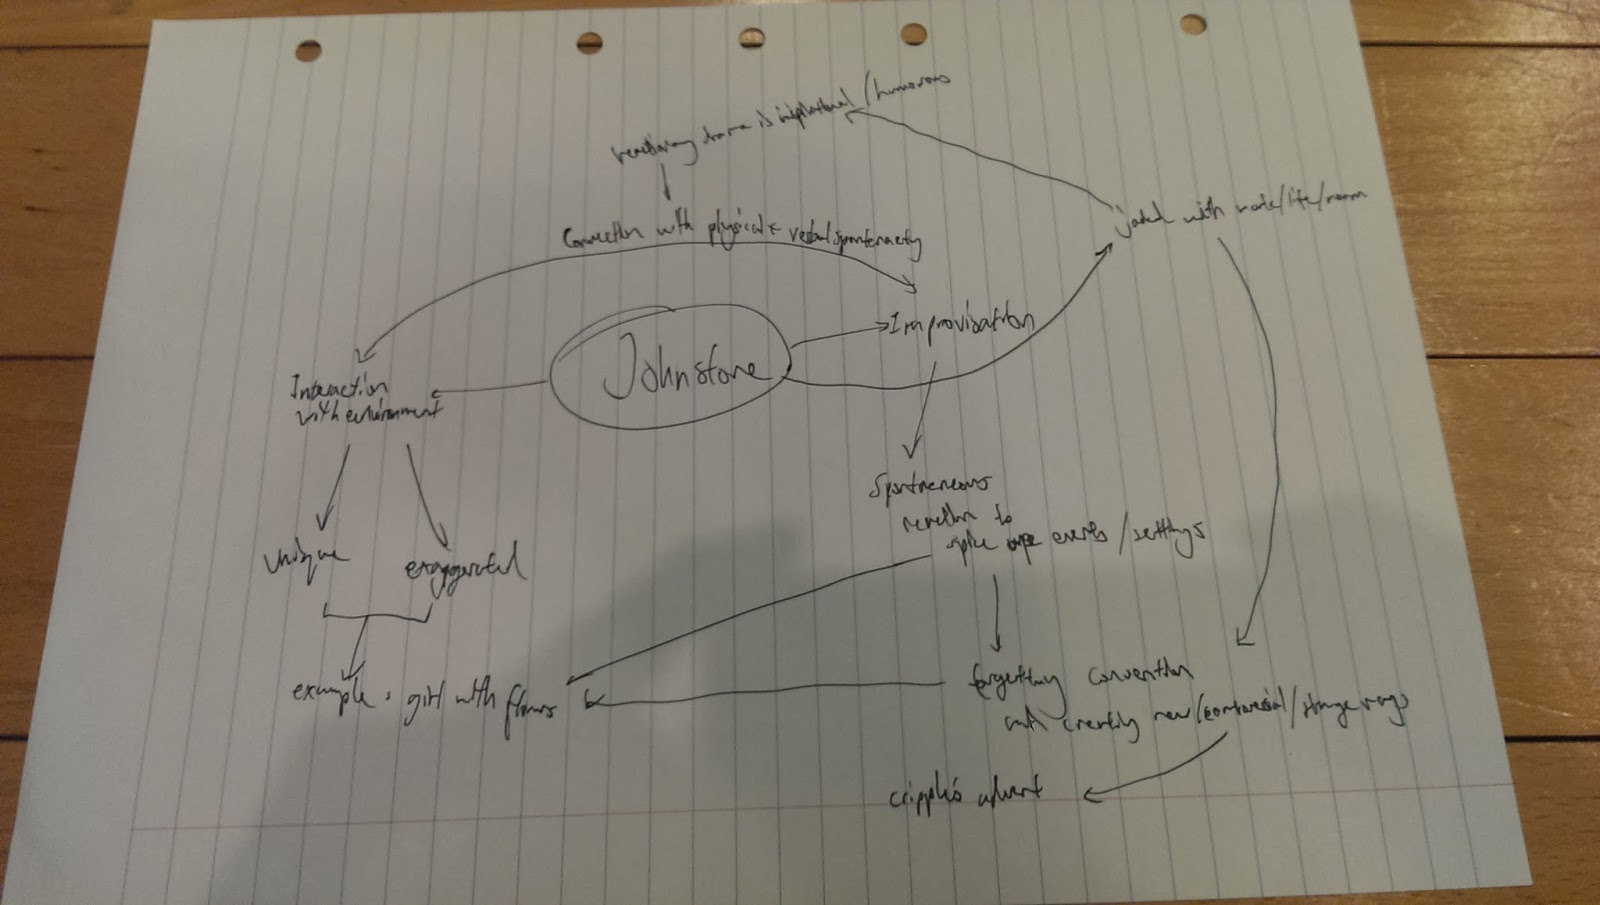 as well as looking into a book written by him on improvisation i organised my initial understanding of johnstone s focuses onto a mindmap